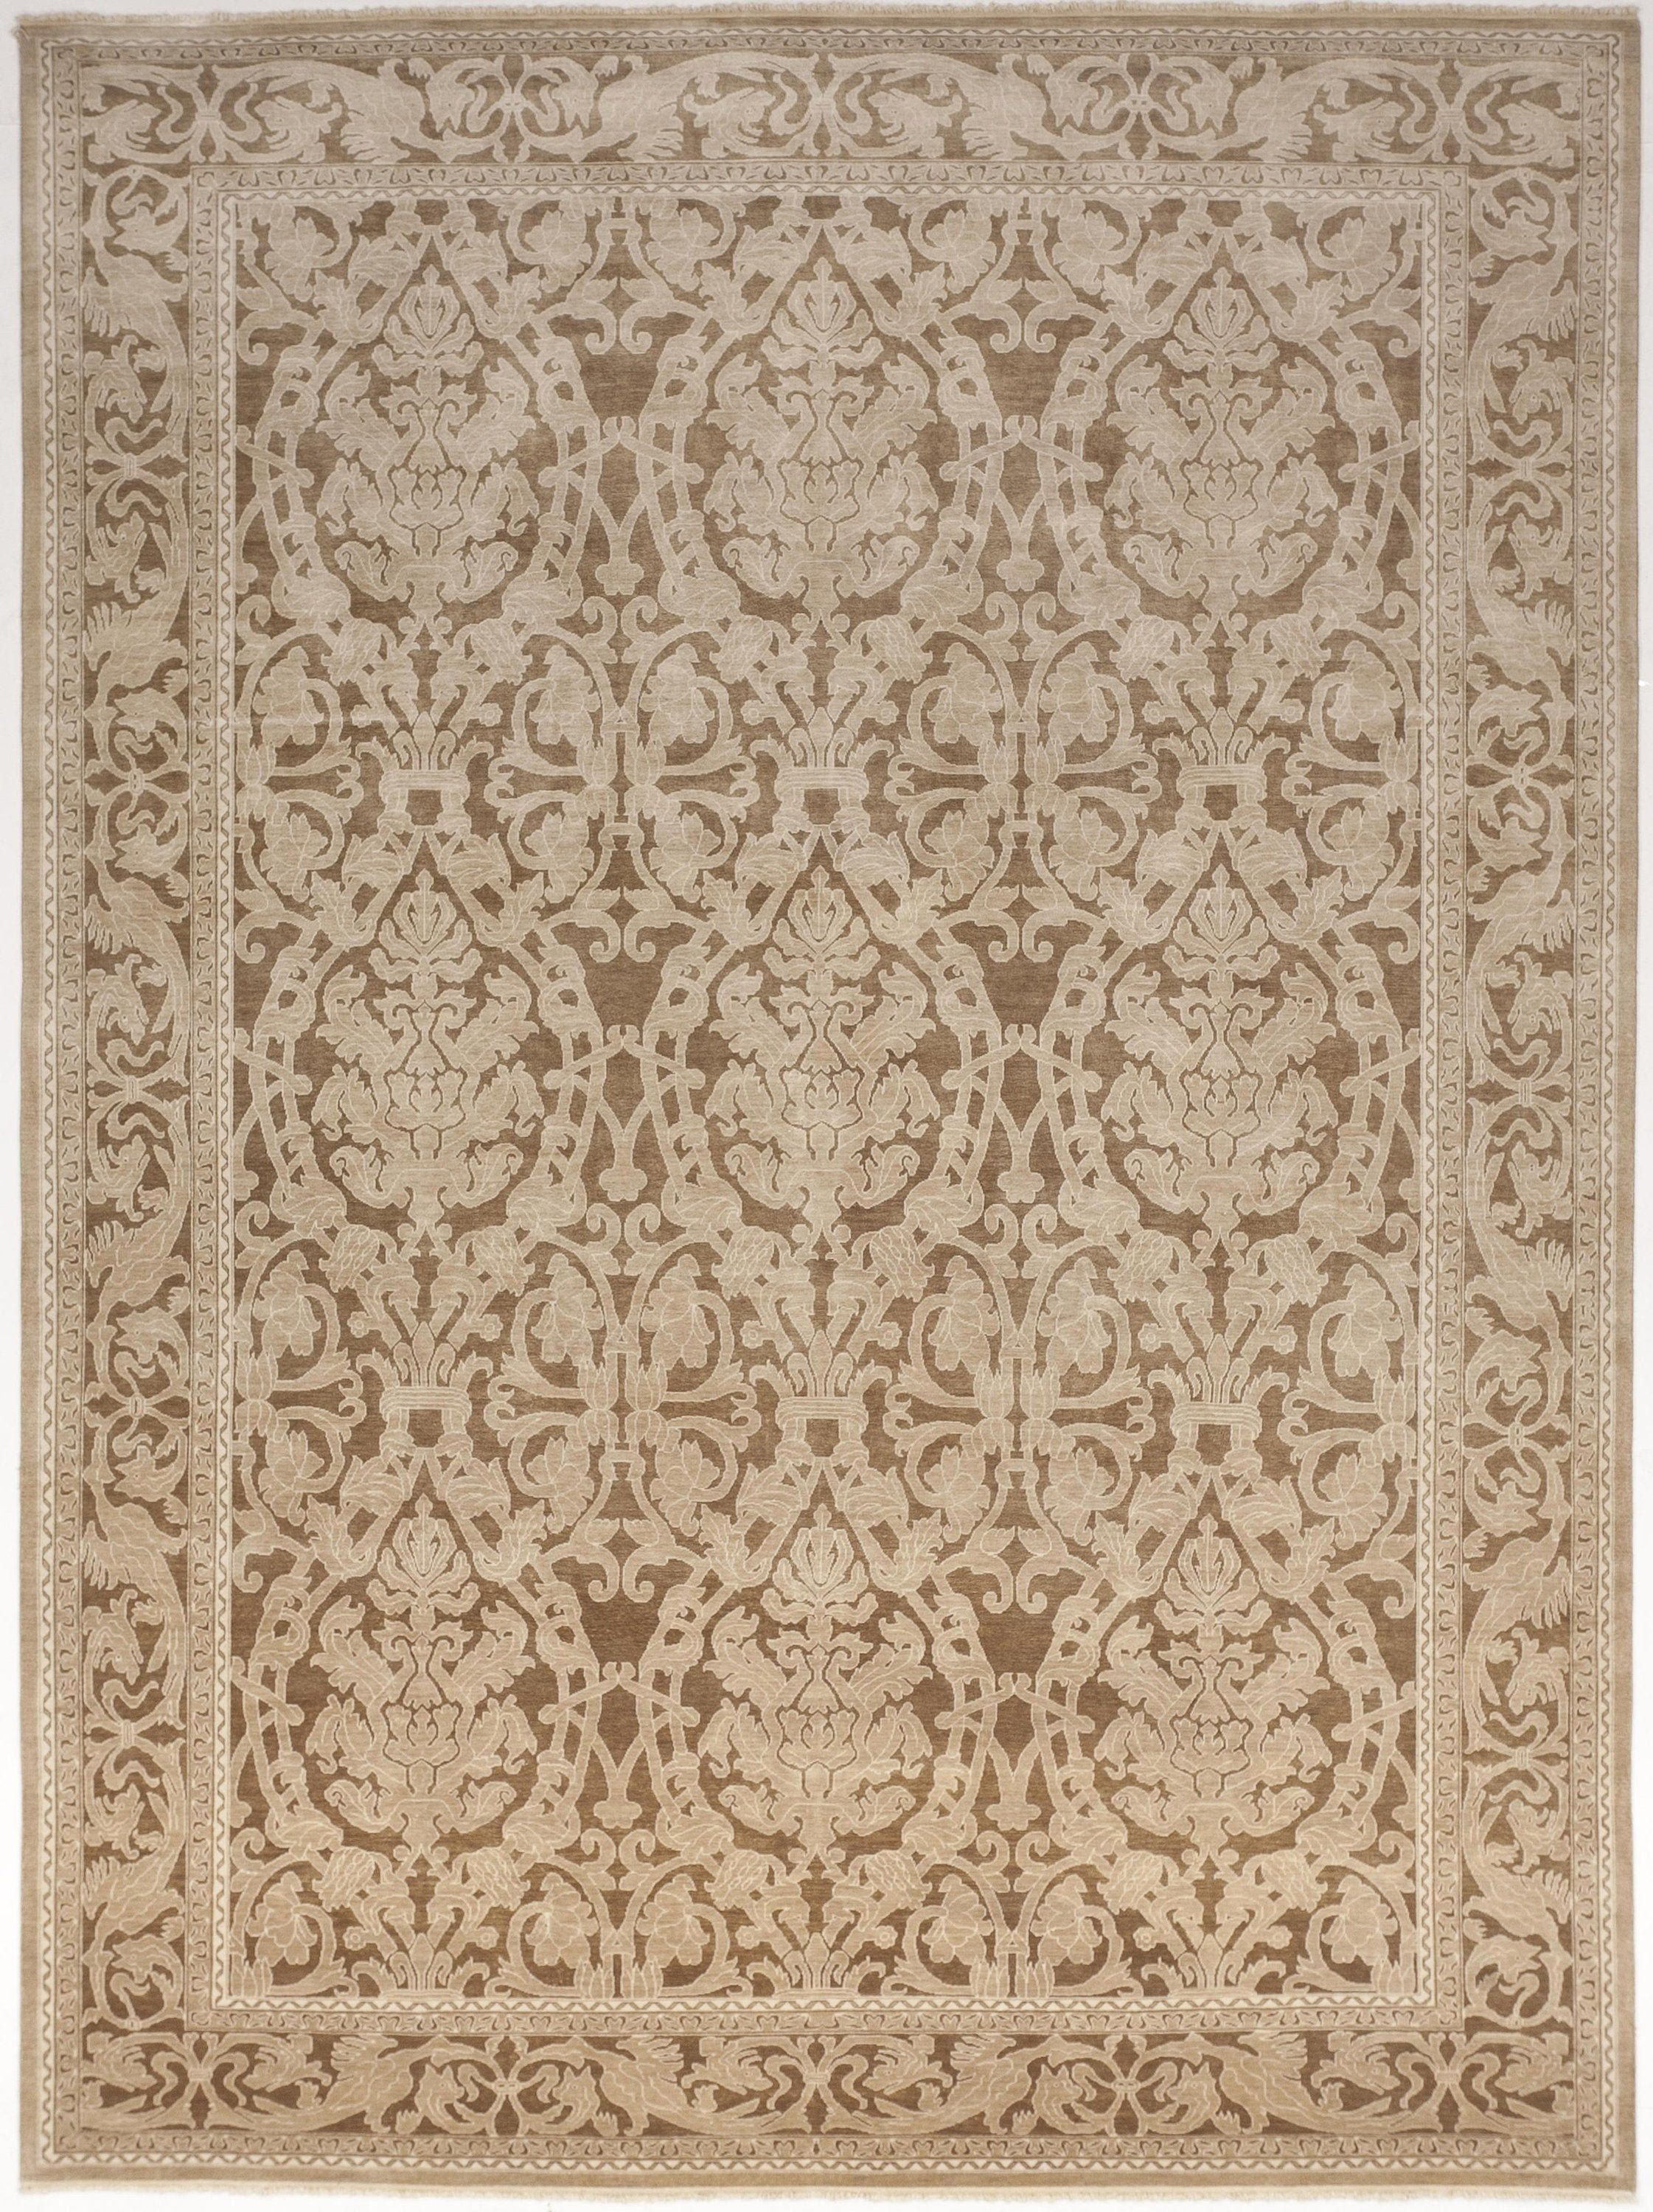 Genuine Hand Knotted Tone On Tone Rug Wool And Silk Pile Etsy Luxury Rug Rugs On Carpet Rugs Hand knotted wool rugs from india